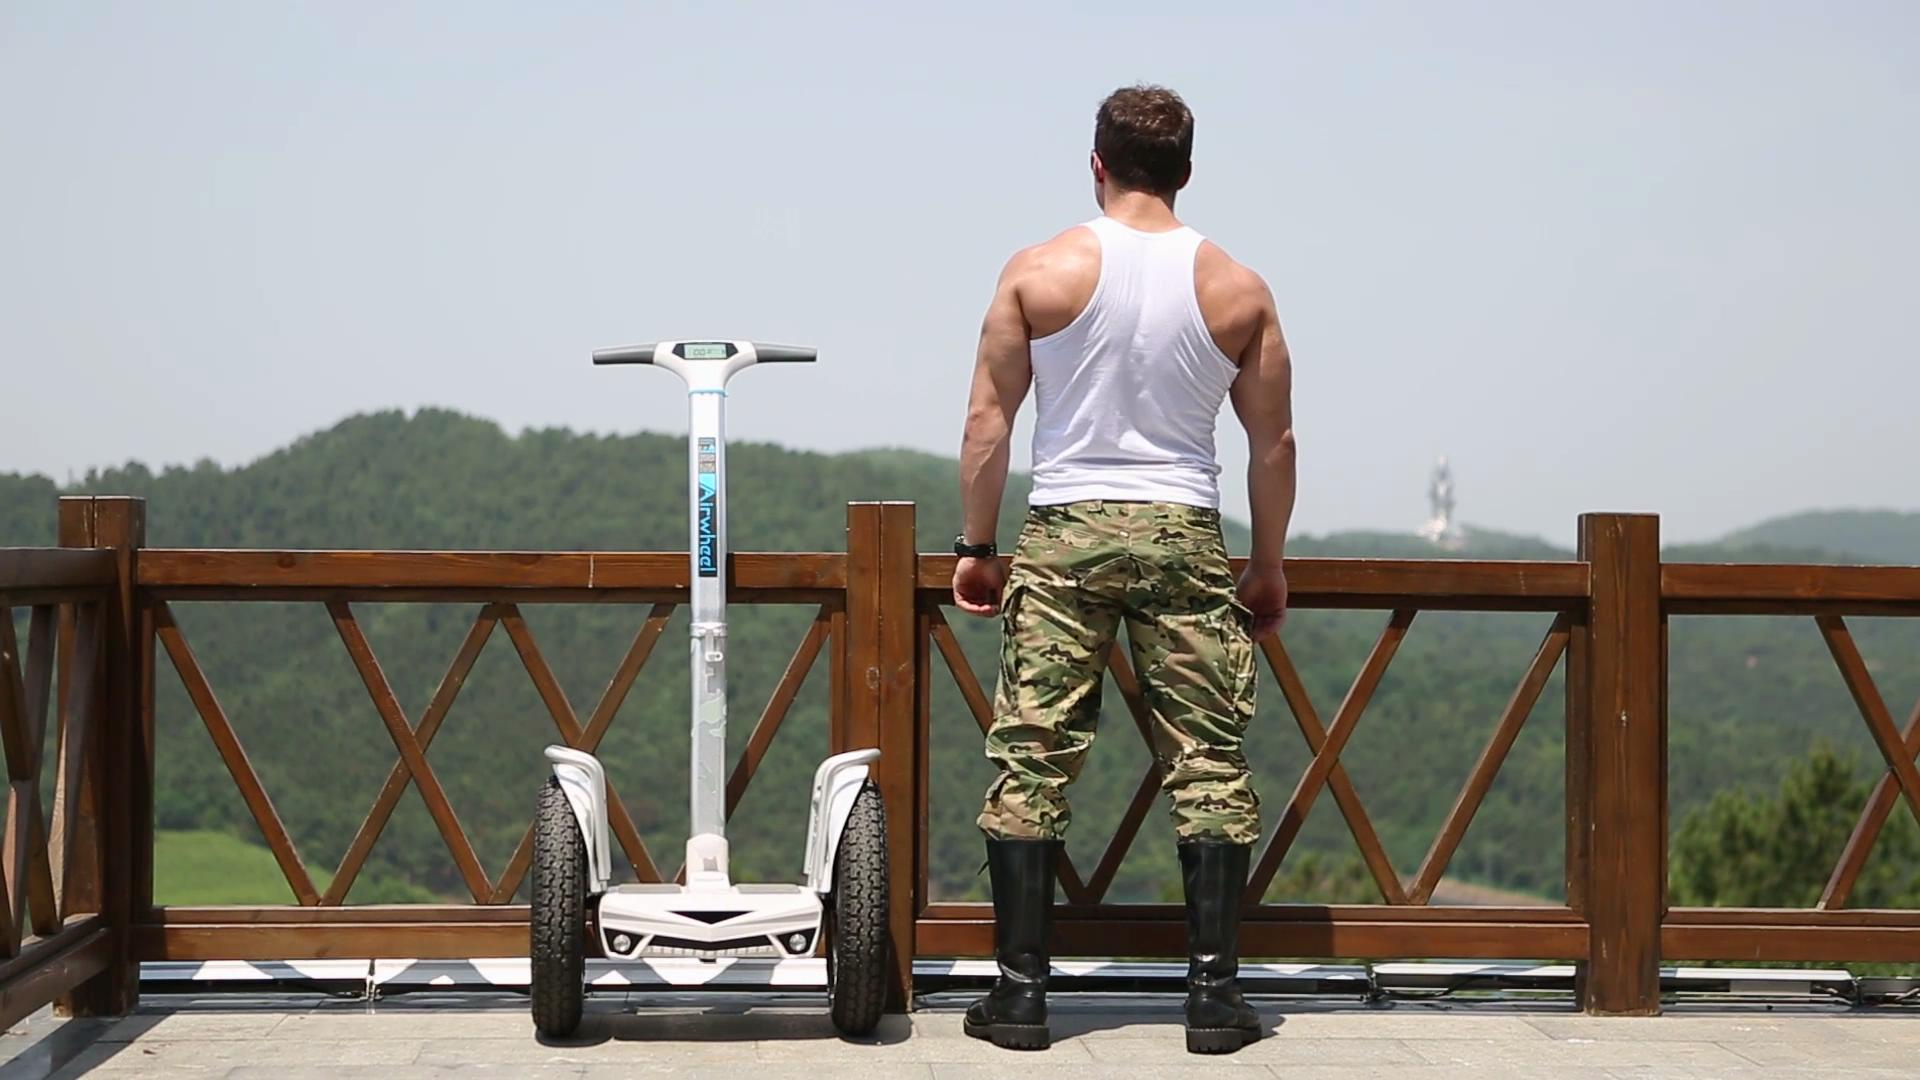 Airwheel Self-balancing Electric Scooter S5, the Vehicle to Happy Life